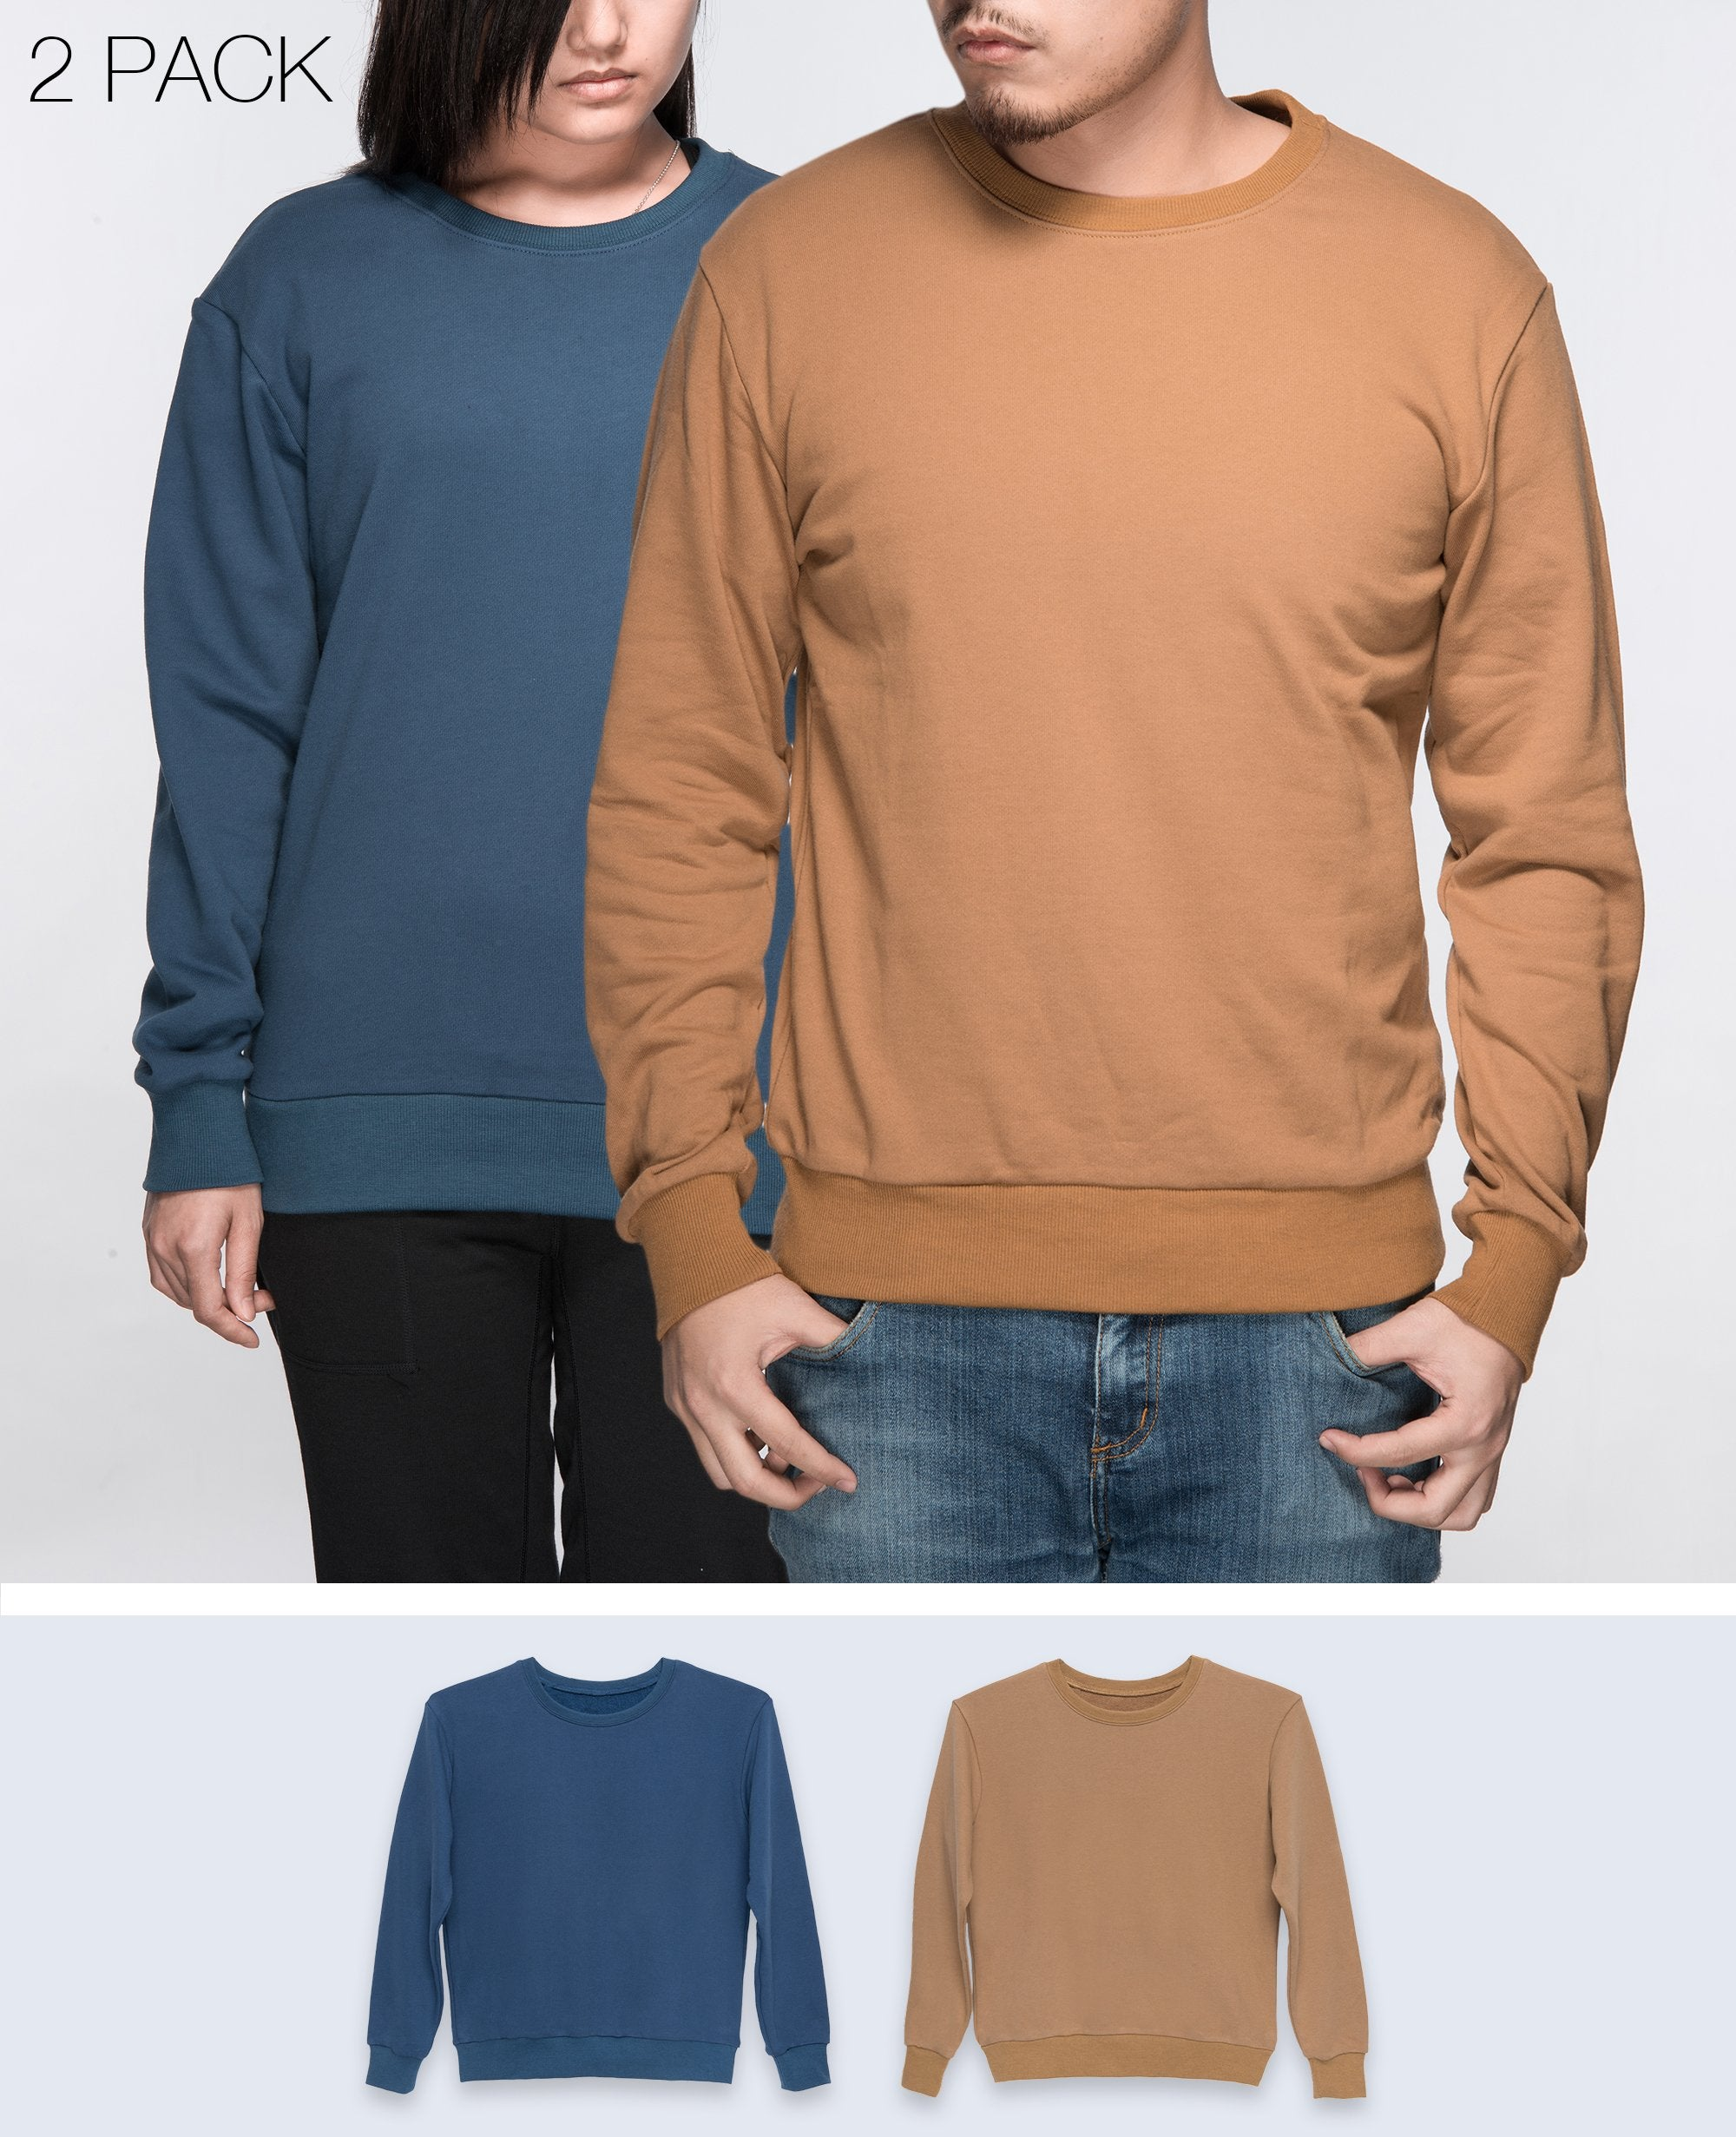 Unisex Basic Sweatshirt in Navy / Light Brown  2 pack - Sweater - BRANMA - BRANMA